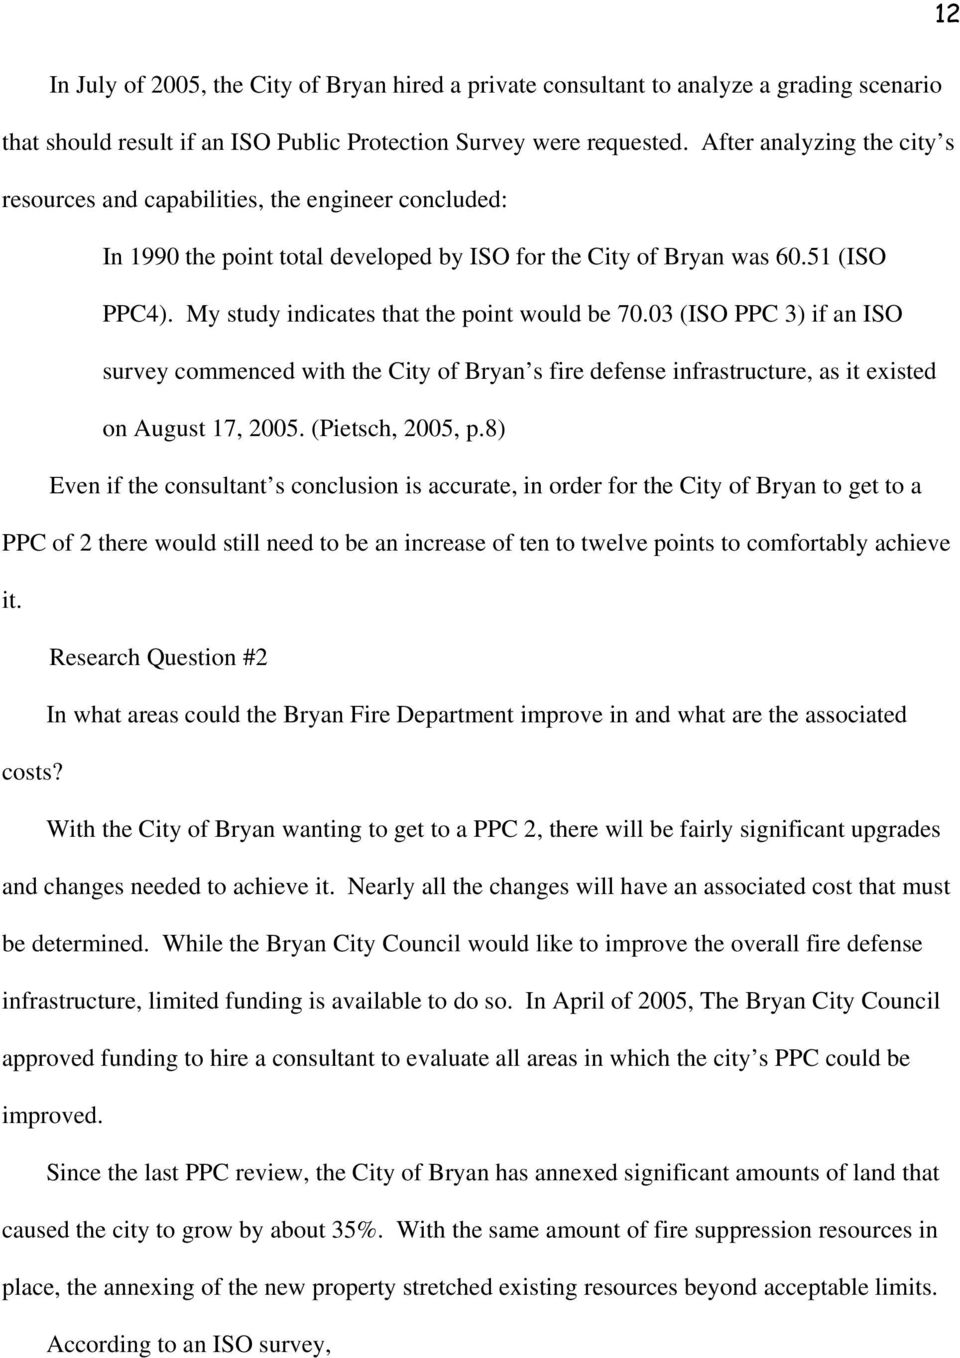 My study indicates that the point would be 70.03 (ISO PPC 3) if an ISO survey commenced with the City of Bryan s fire defense infrastructure, as it existed on August 17, 2005. (Pietsch, 2005, p.